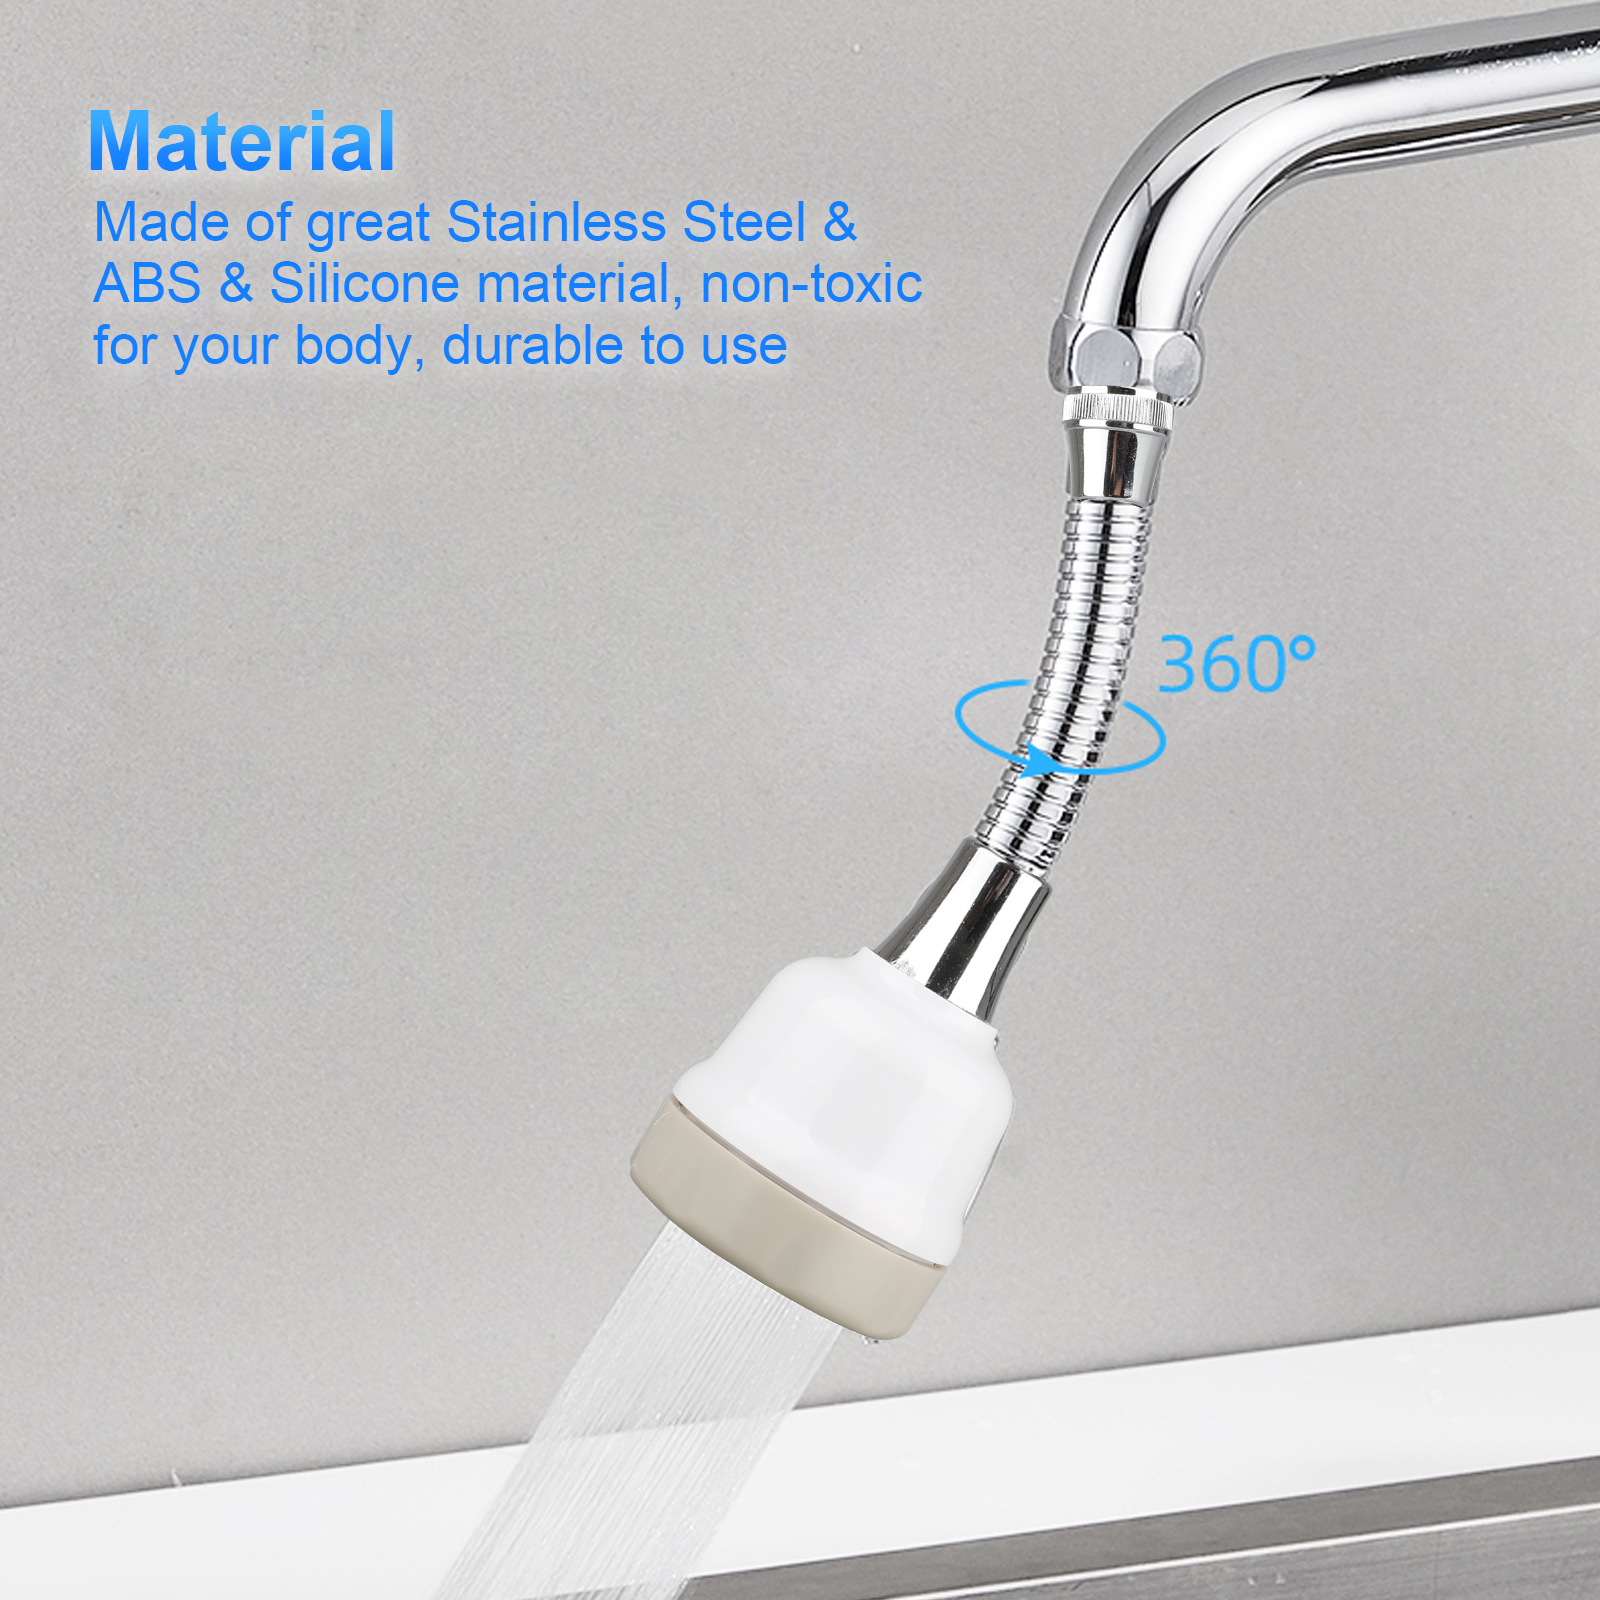 Details About Faucet Filter Extender Spray Shower Head Water Tap Home Kitchen Tool 360 Rotary